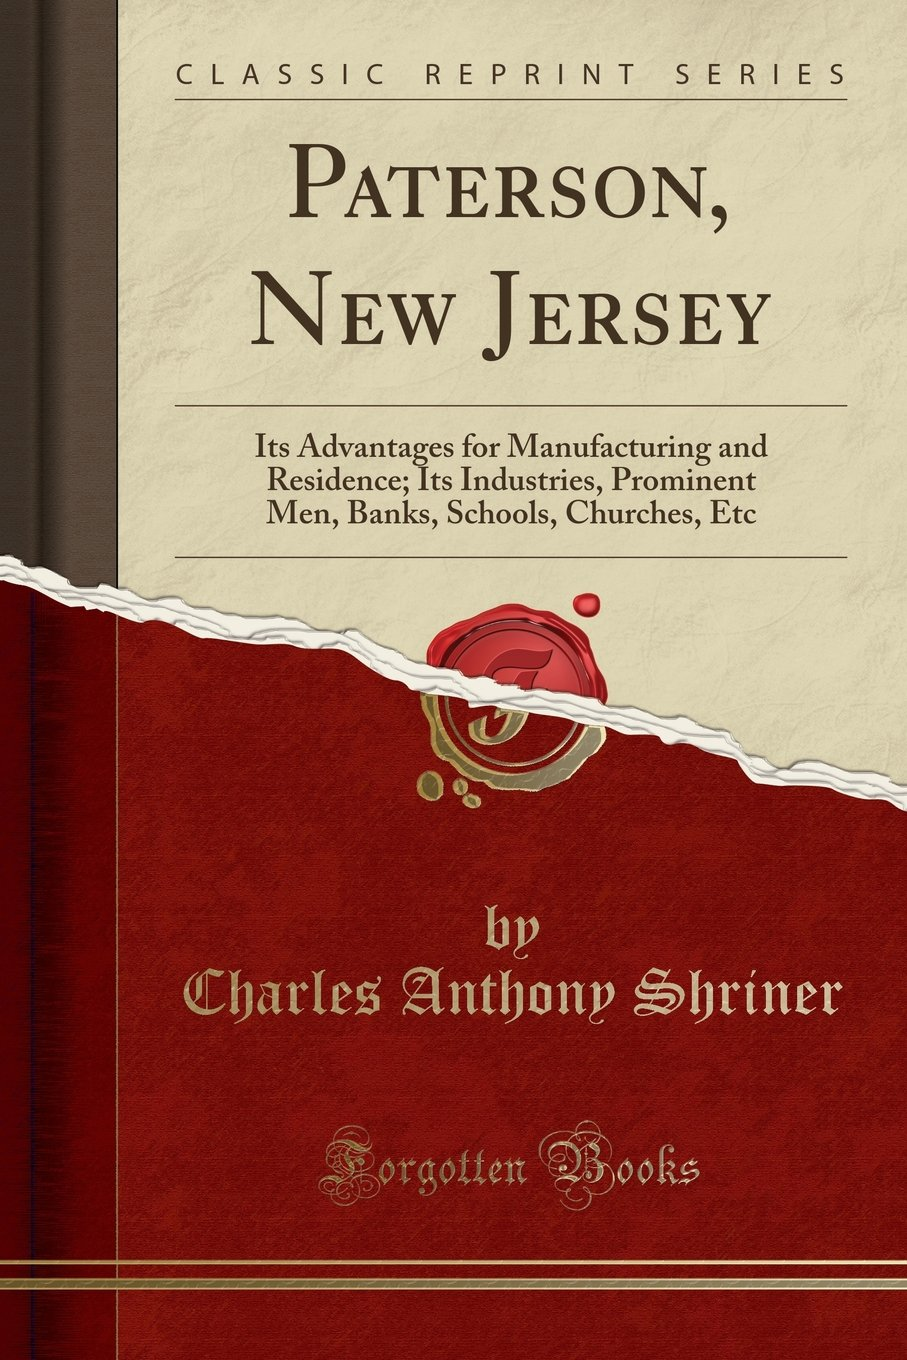 Paterson, New Jersey: Its Advantages for Manufacturing and Residence; Its Industries, Prominent Men, Banks, Schools, Churches, Etc (Classic Reprint) PDF Text fb2 ebook